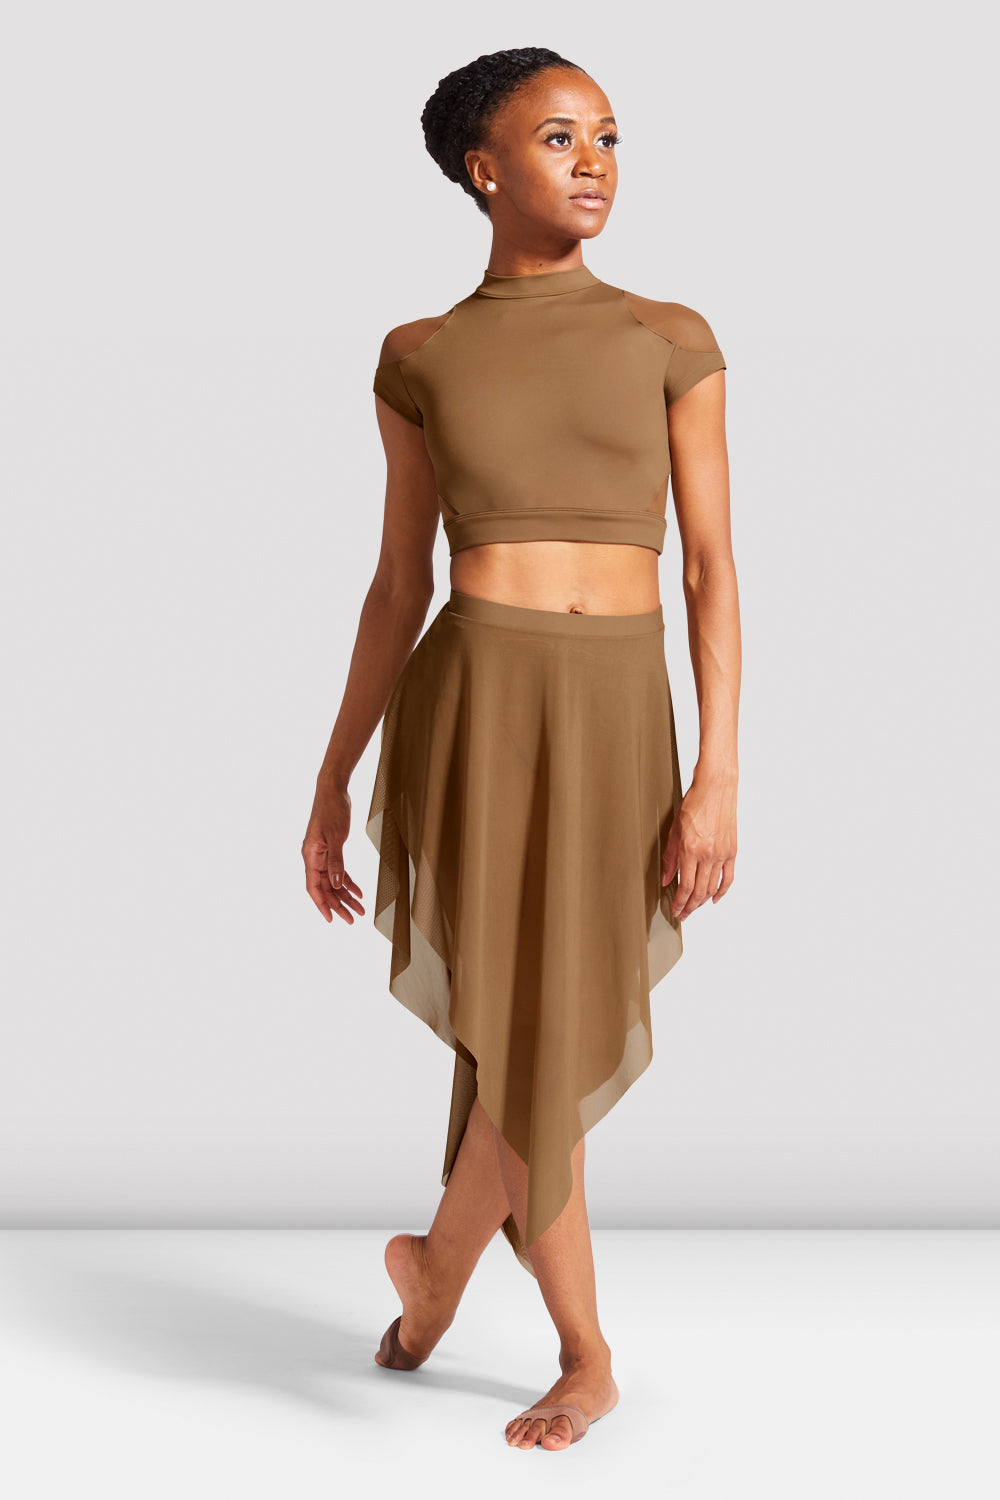 Ladies Hanae Cap Sleeve Crop Top - BLOCH US